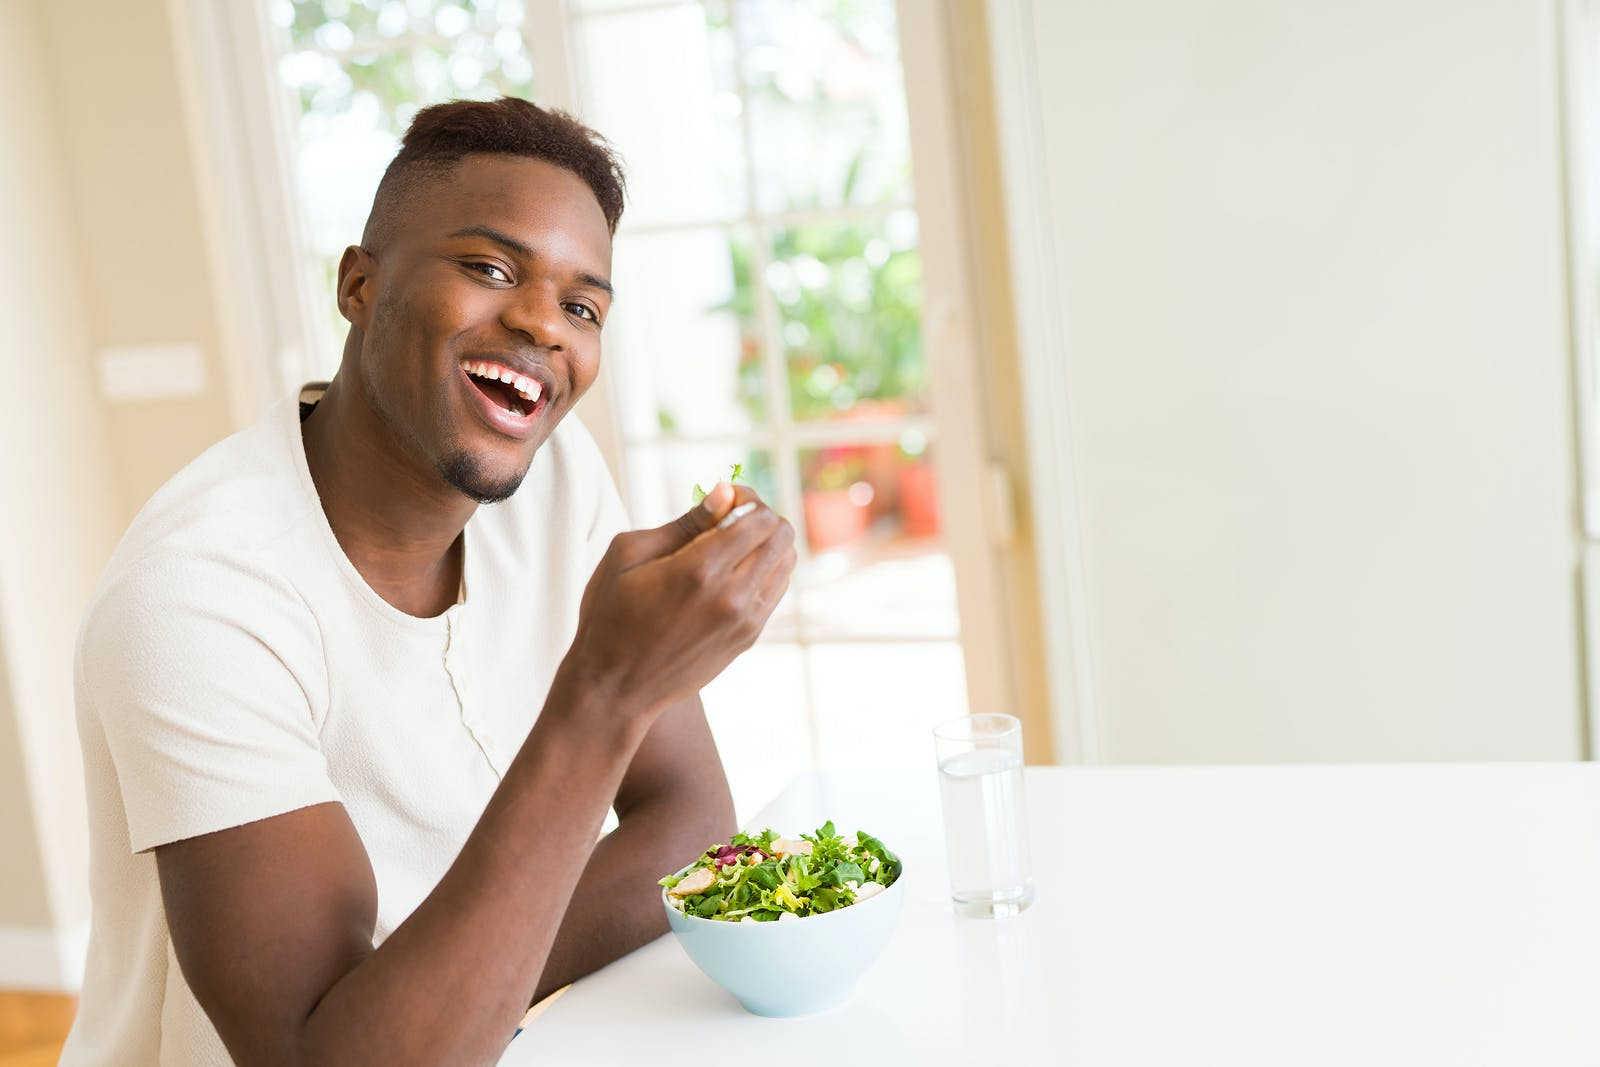 Handsome african young man eating a healthy vegetable salad using a fork to eat lettuce, happy and smiling sitting on the table